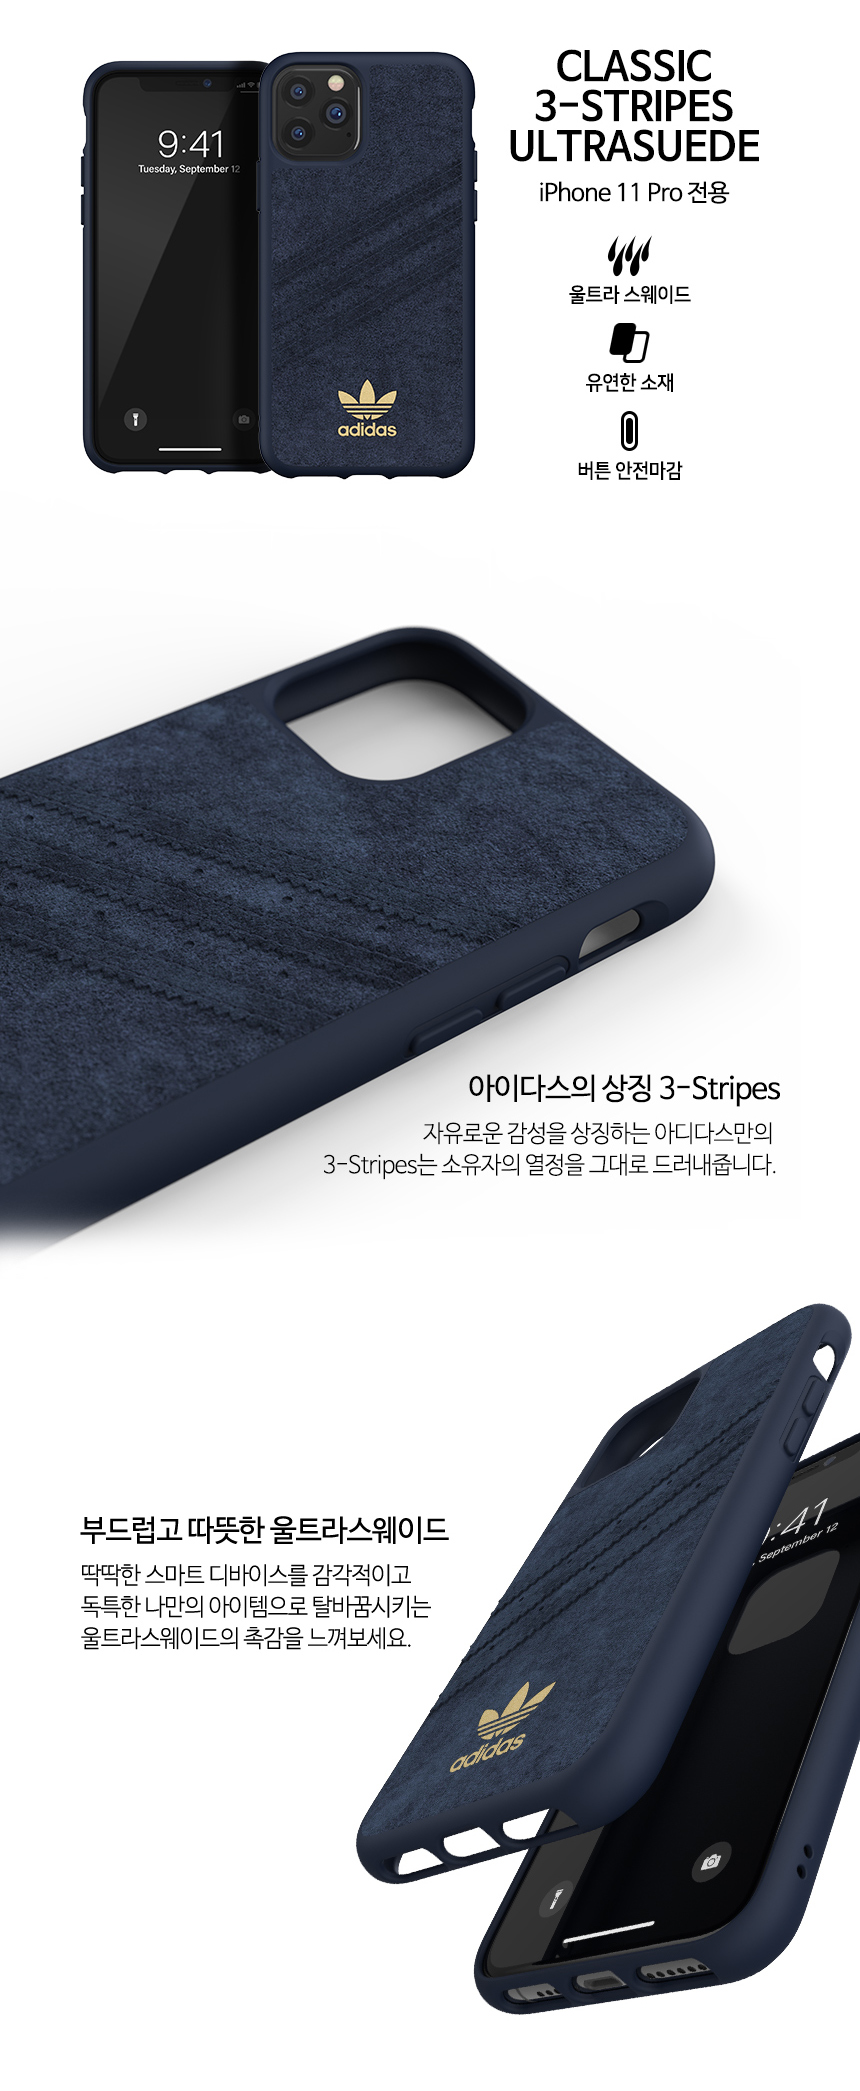 Classic-3-Stripes-Ultrasuede_ip11P_02